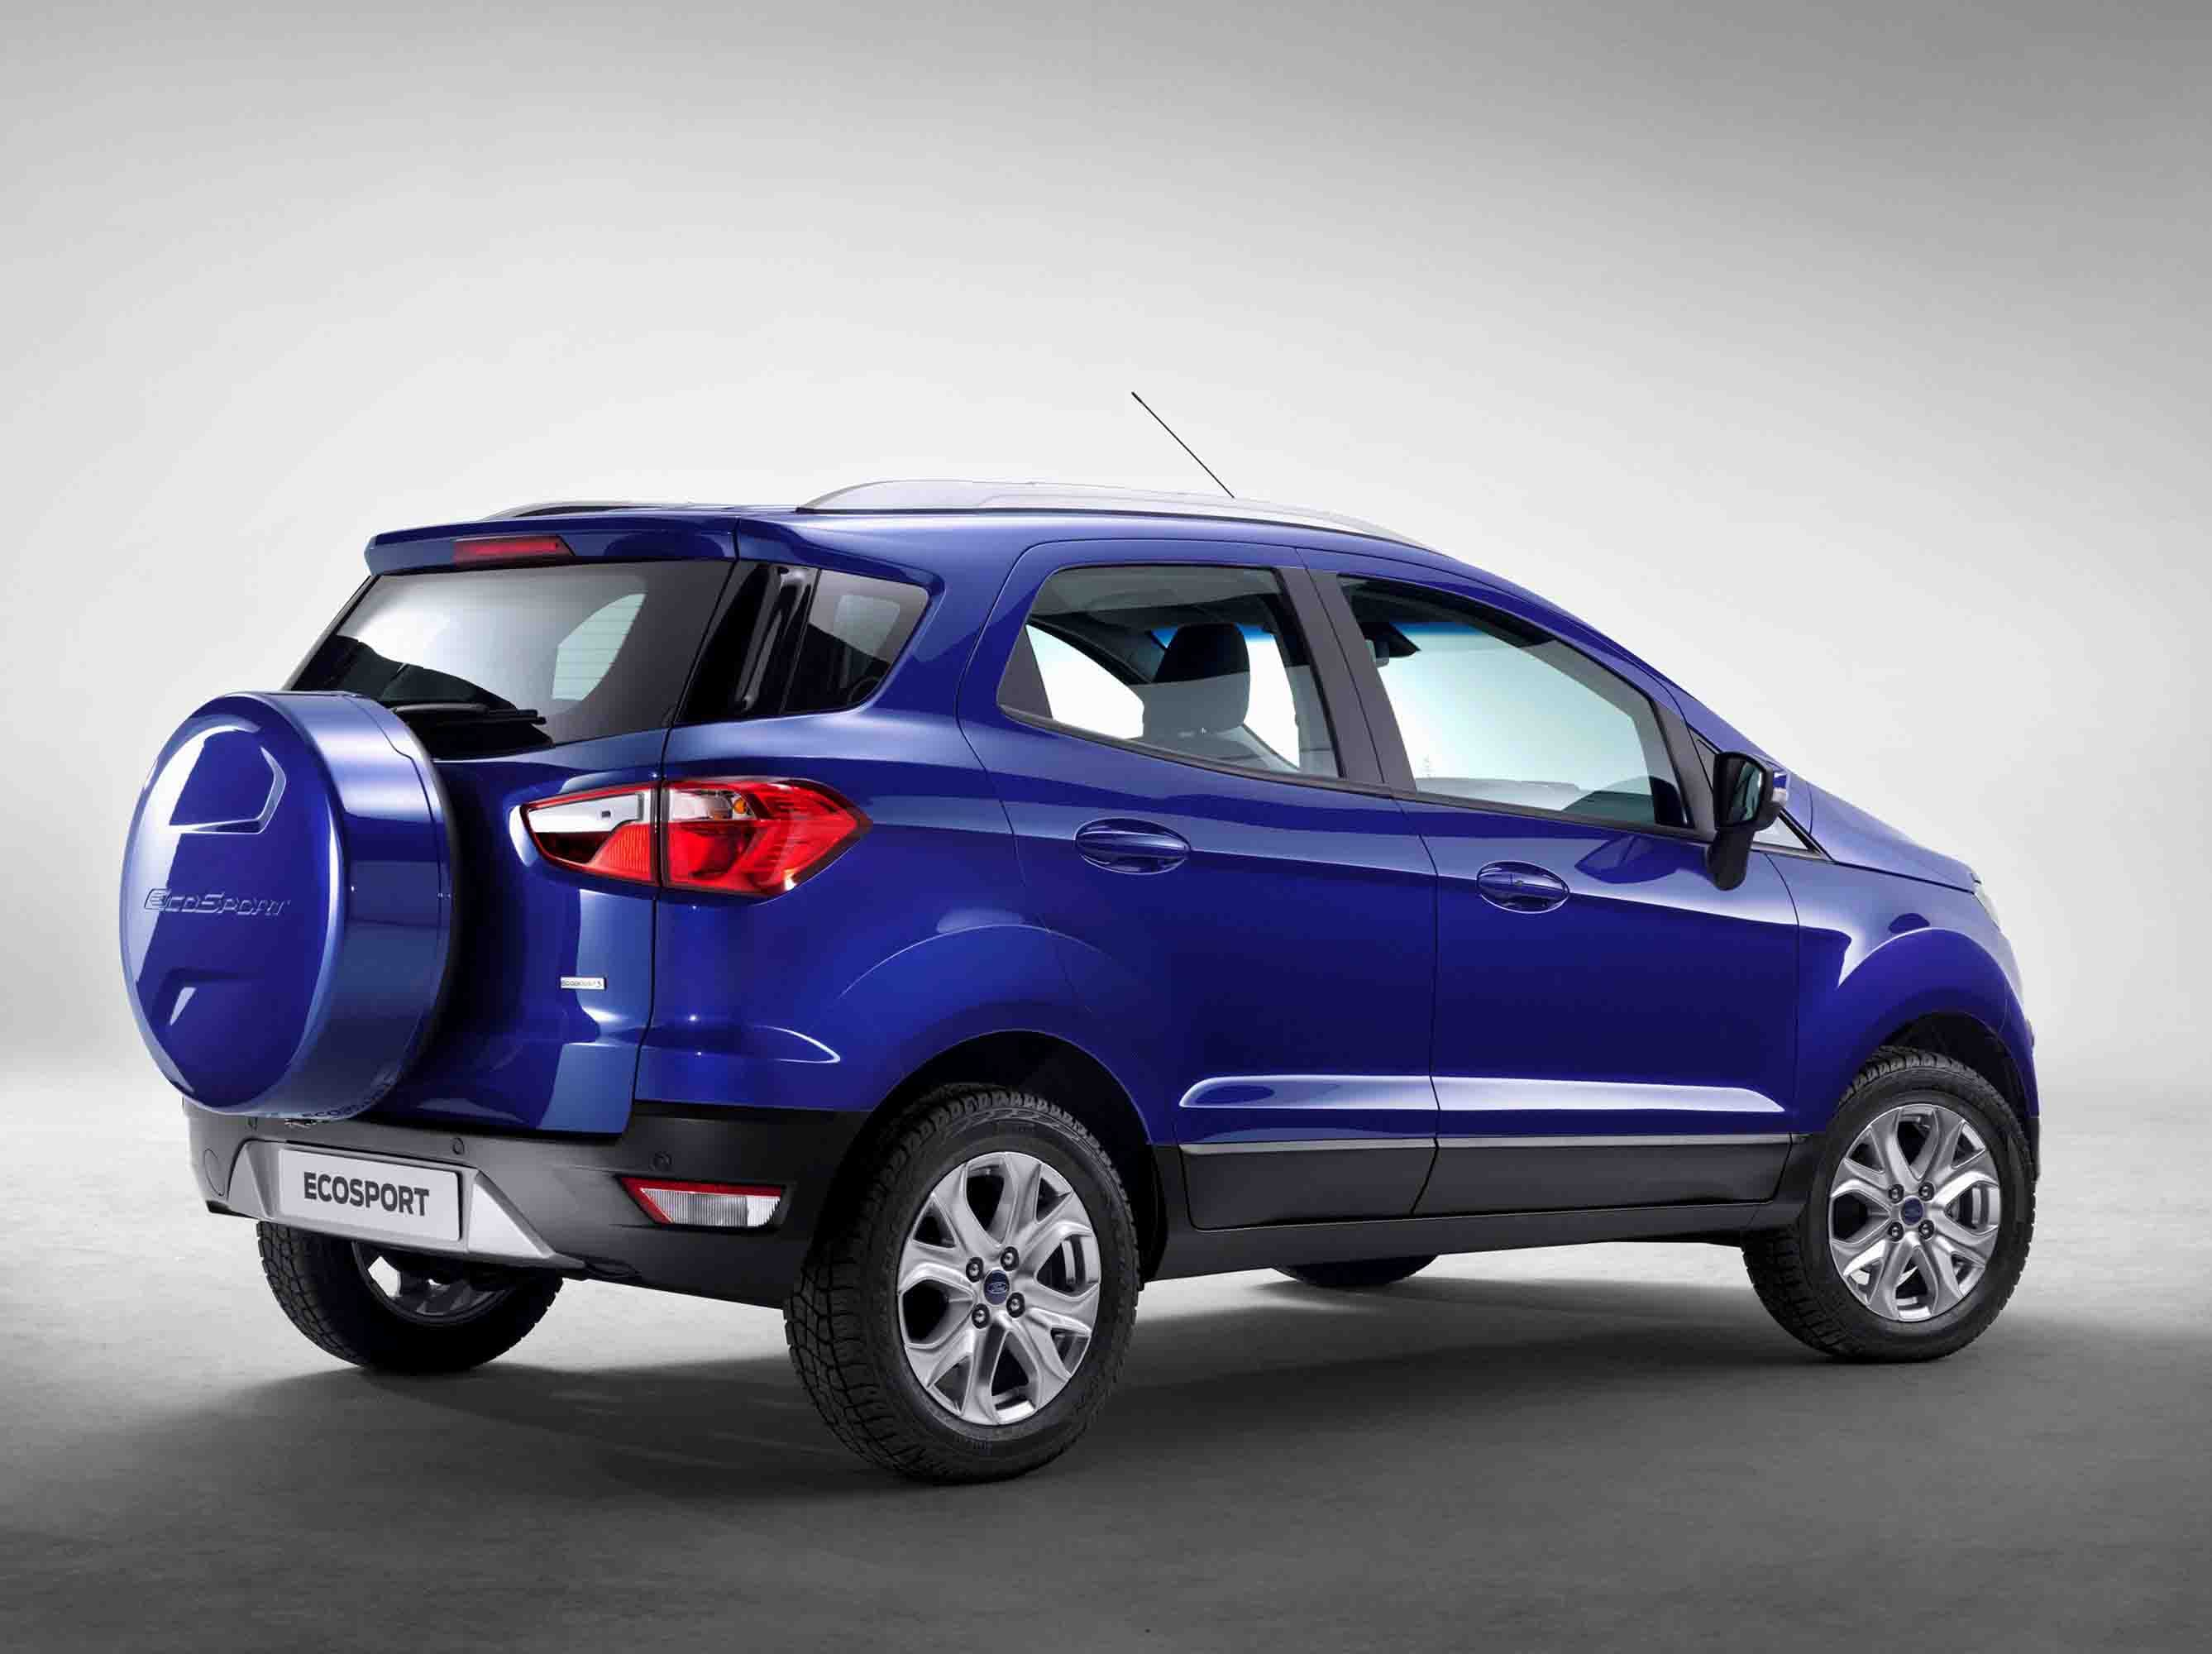 ford ecosport 1 5 tivct petrol titanium at price in india features car specifications review. Black Bedroom Furniture Sets. Home Design Ideas